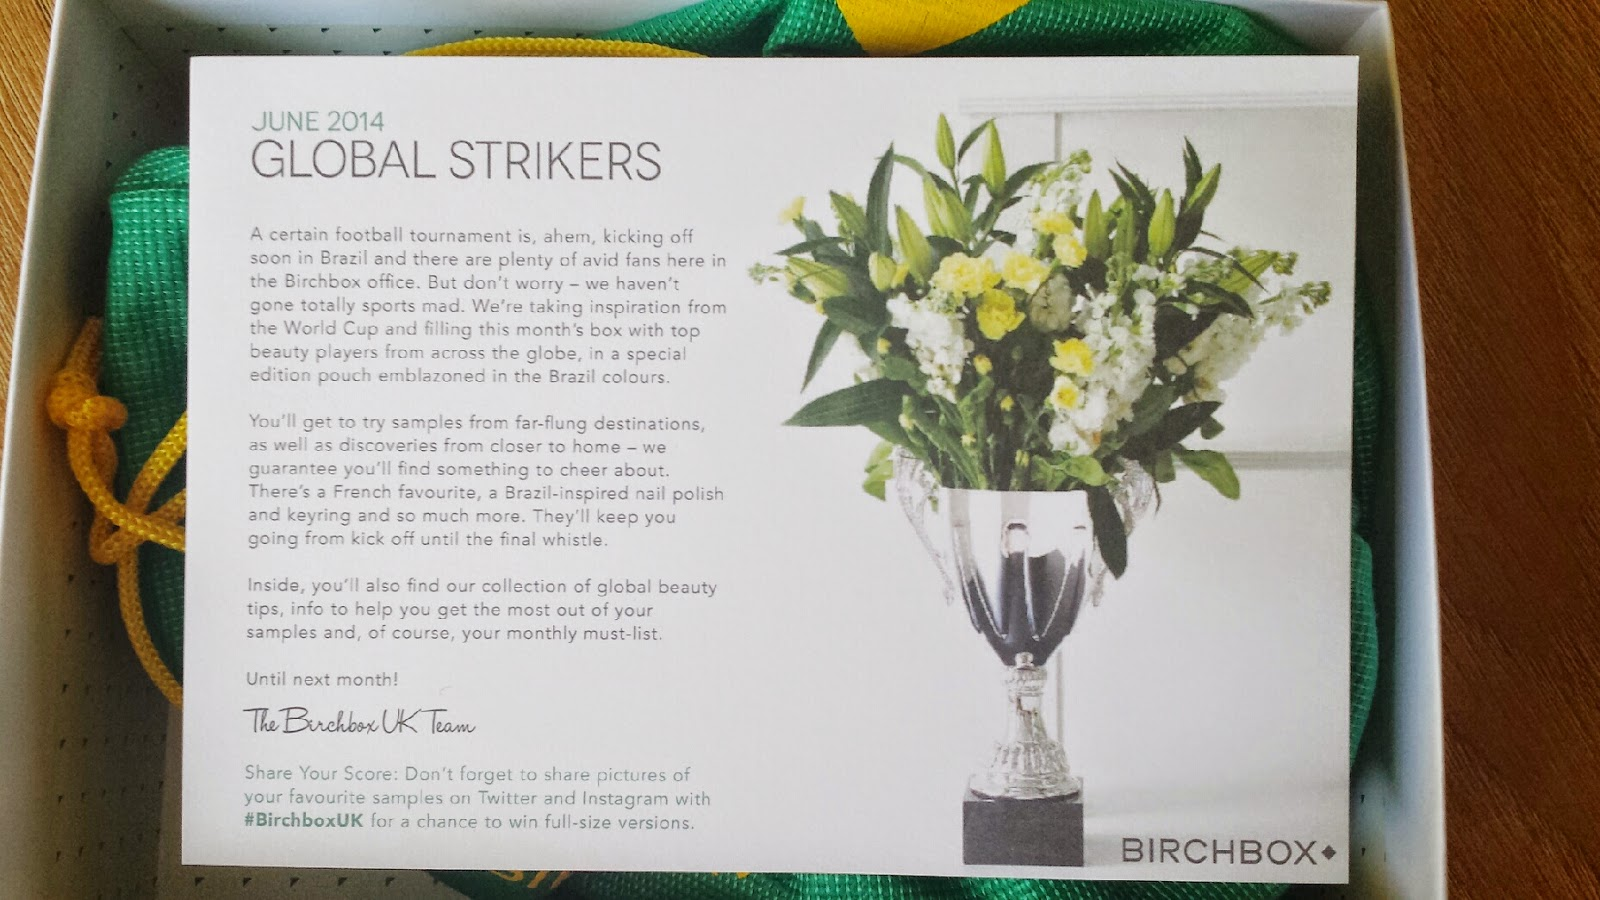 Birchbox Global Strikers June 2014